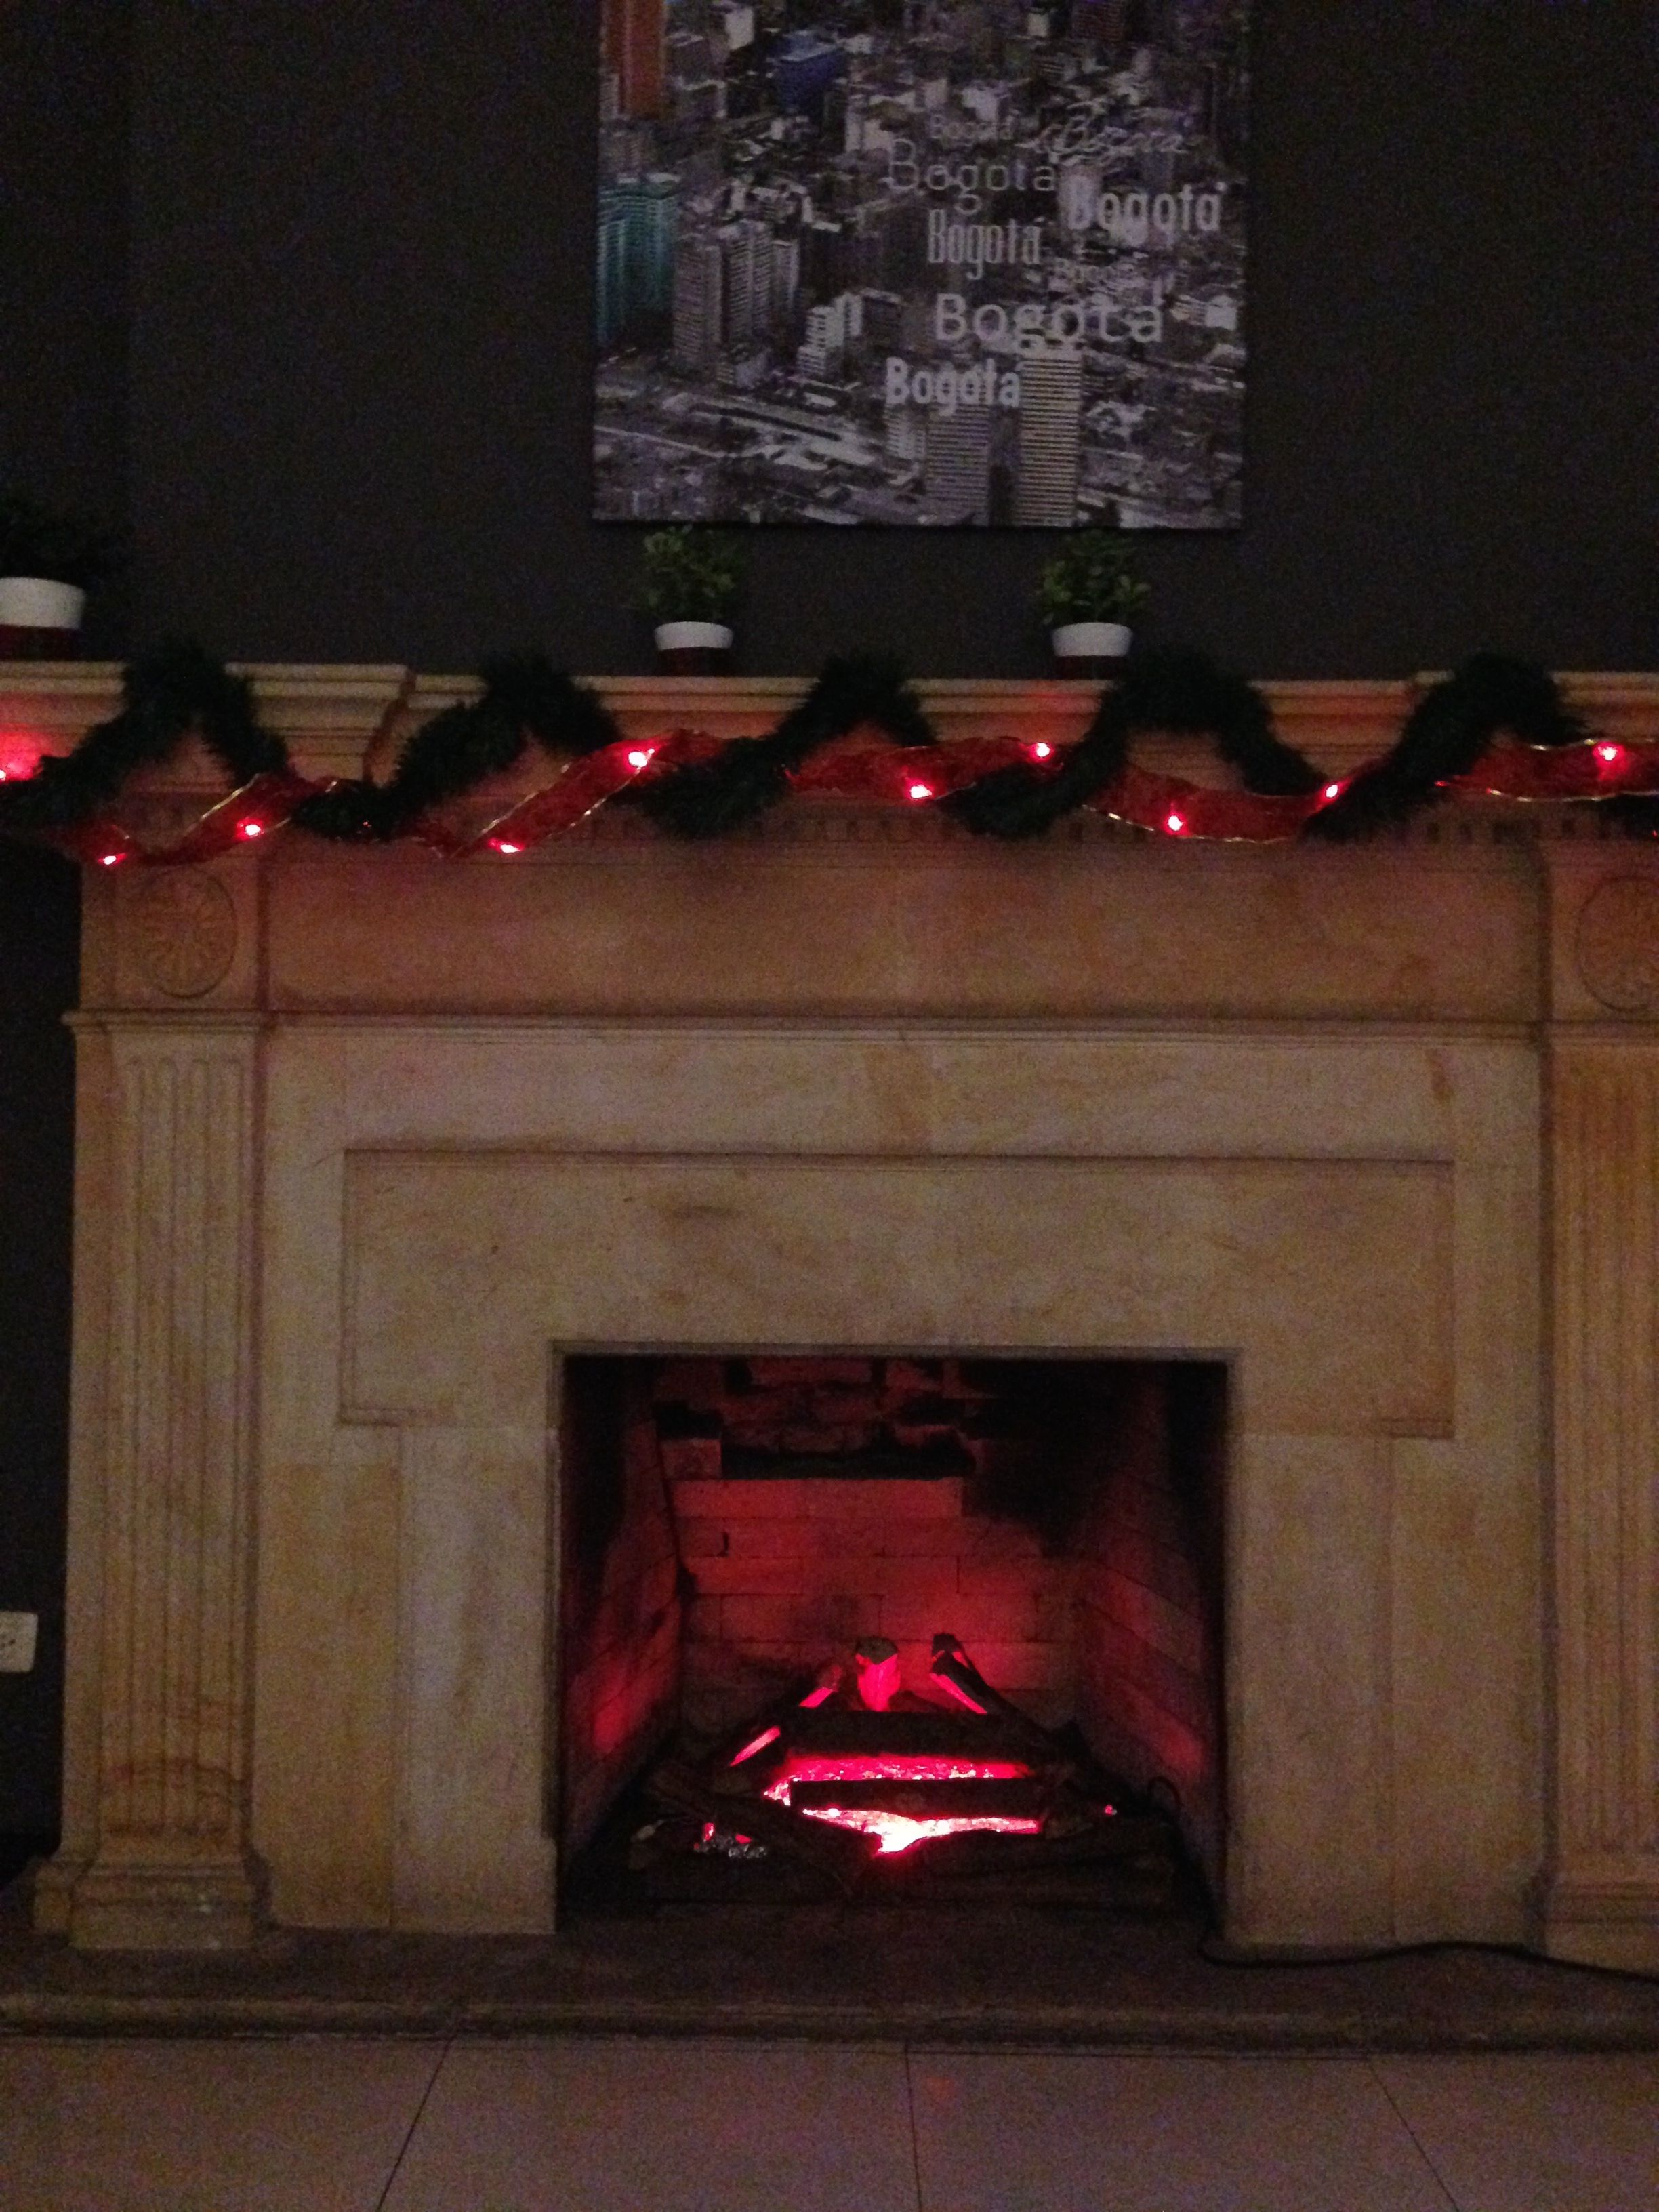 Fireplace build with christmas ligths, Aluminium foil and stick woods